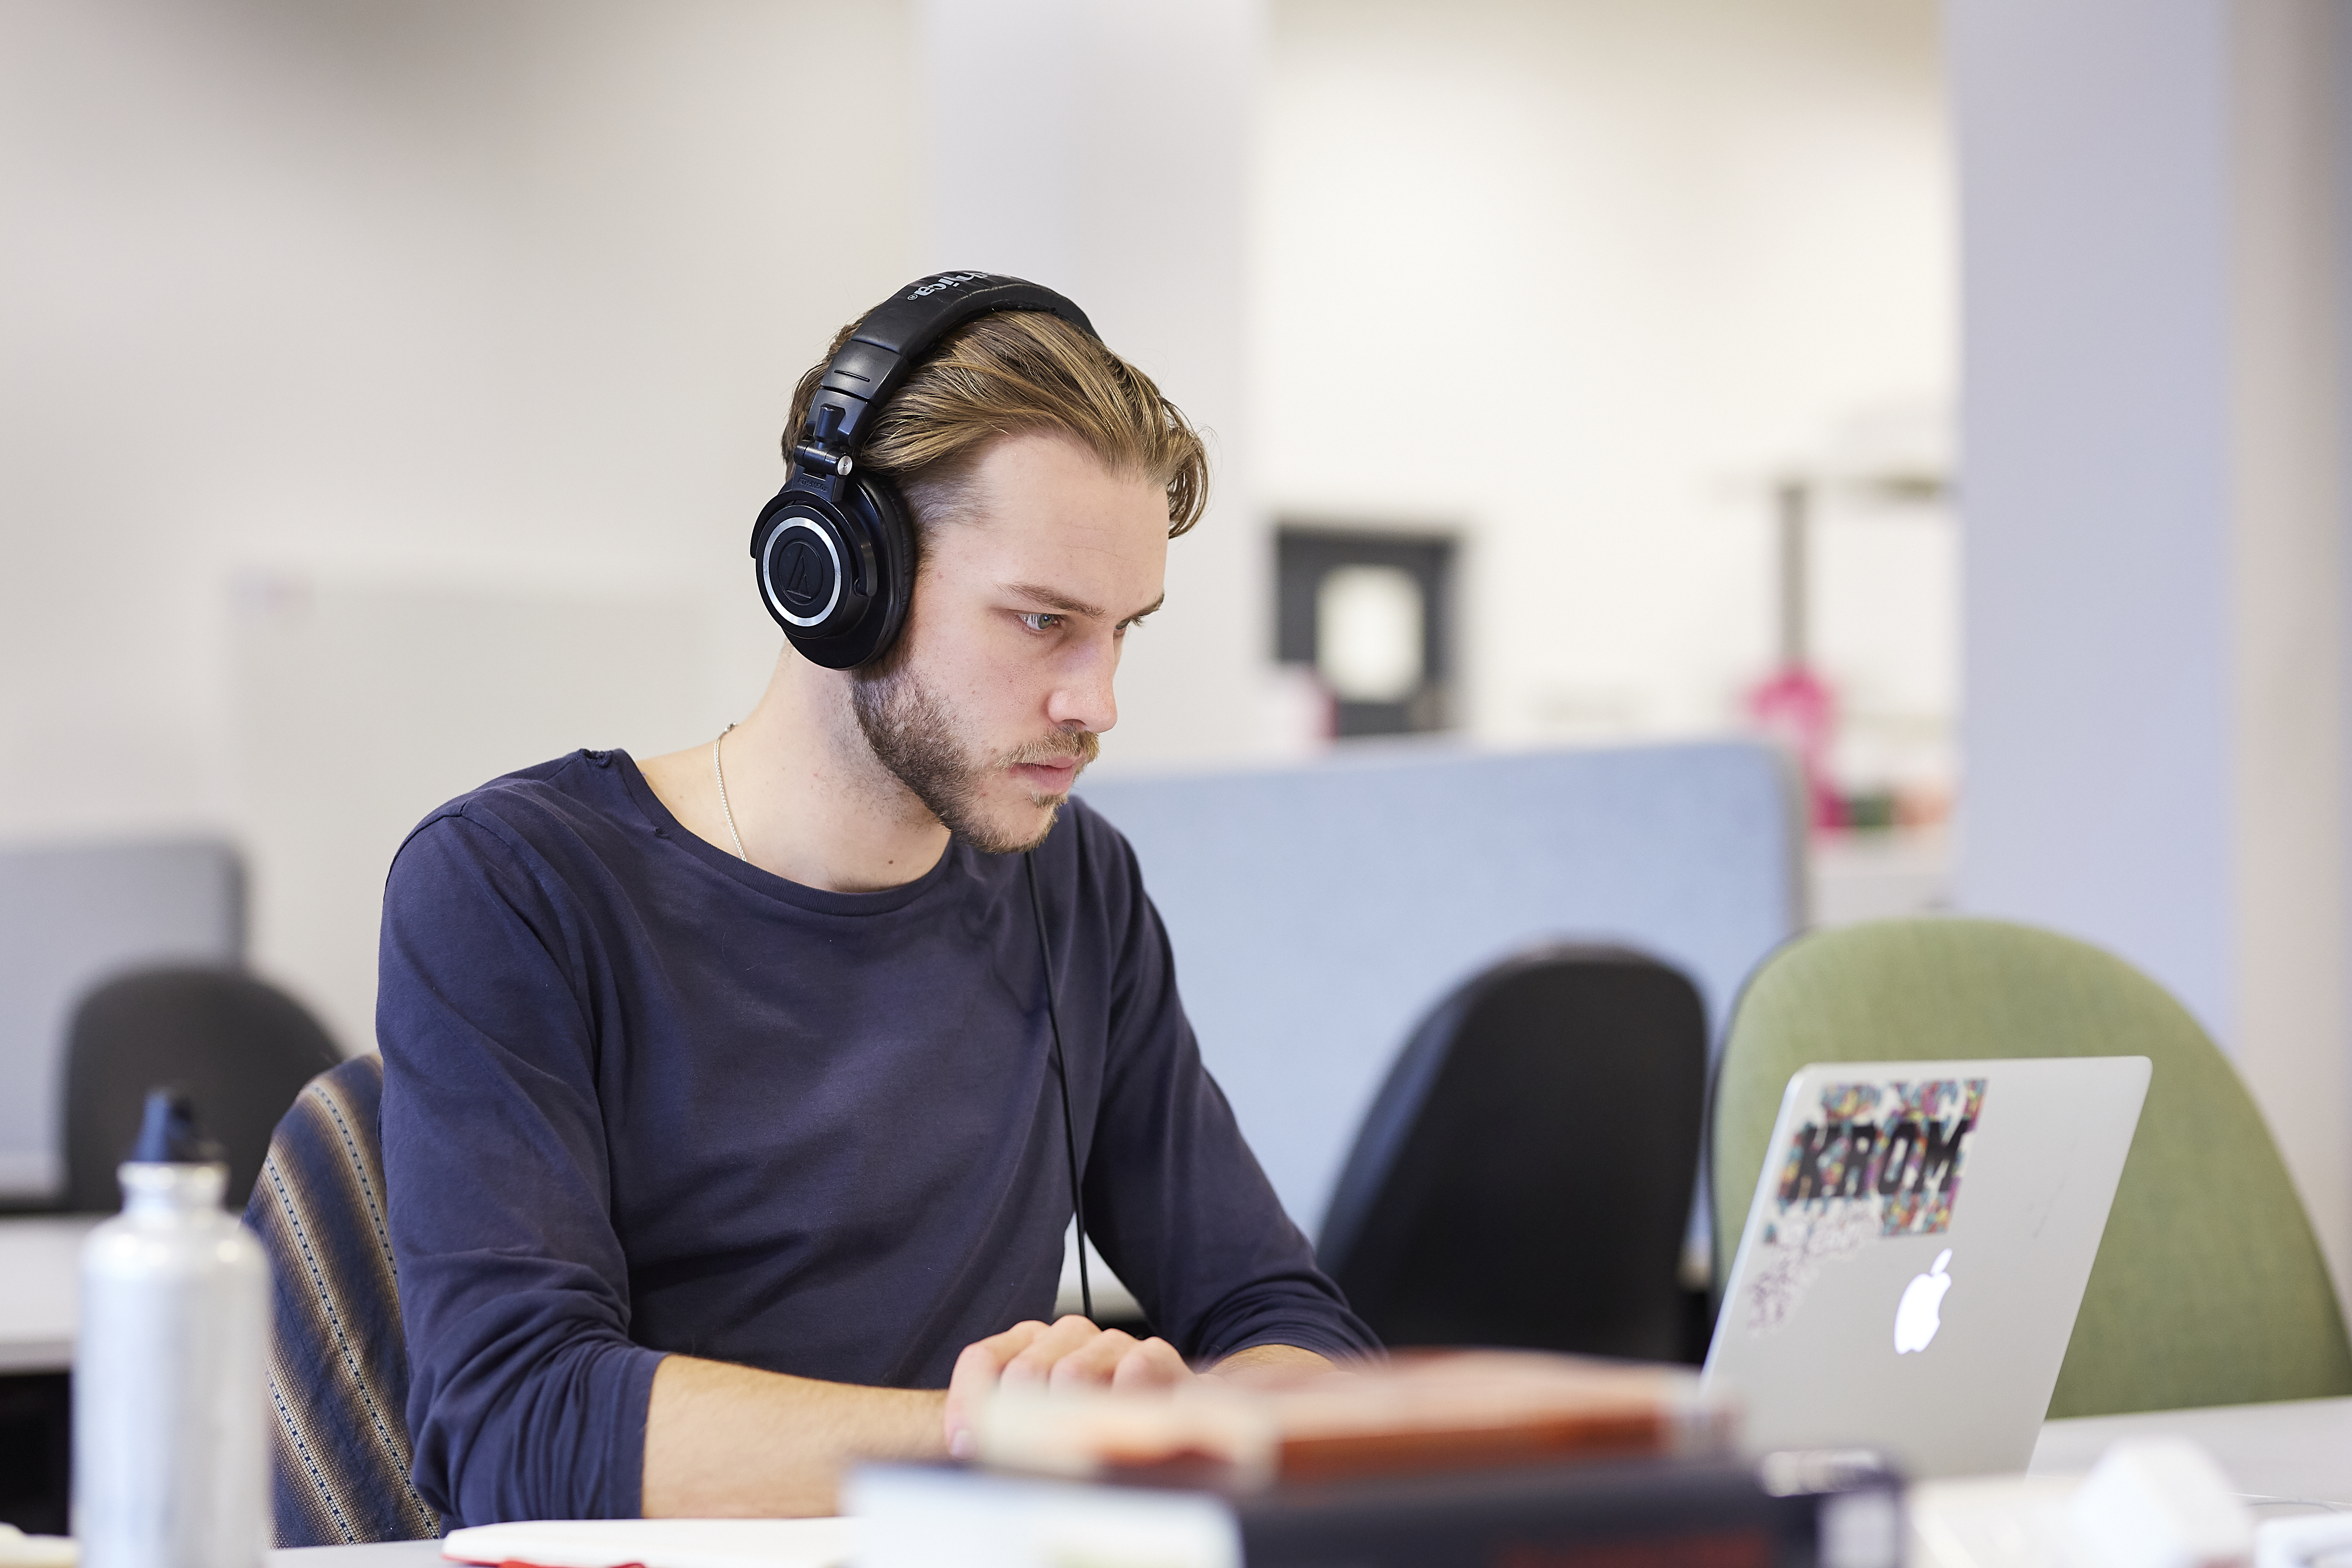 Young man in the Library wearing headphones and looking at a laptop